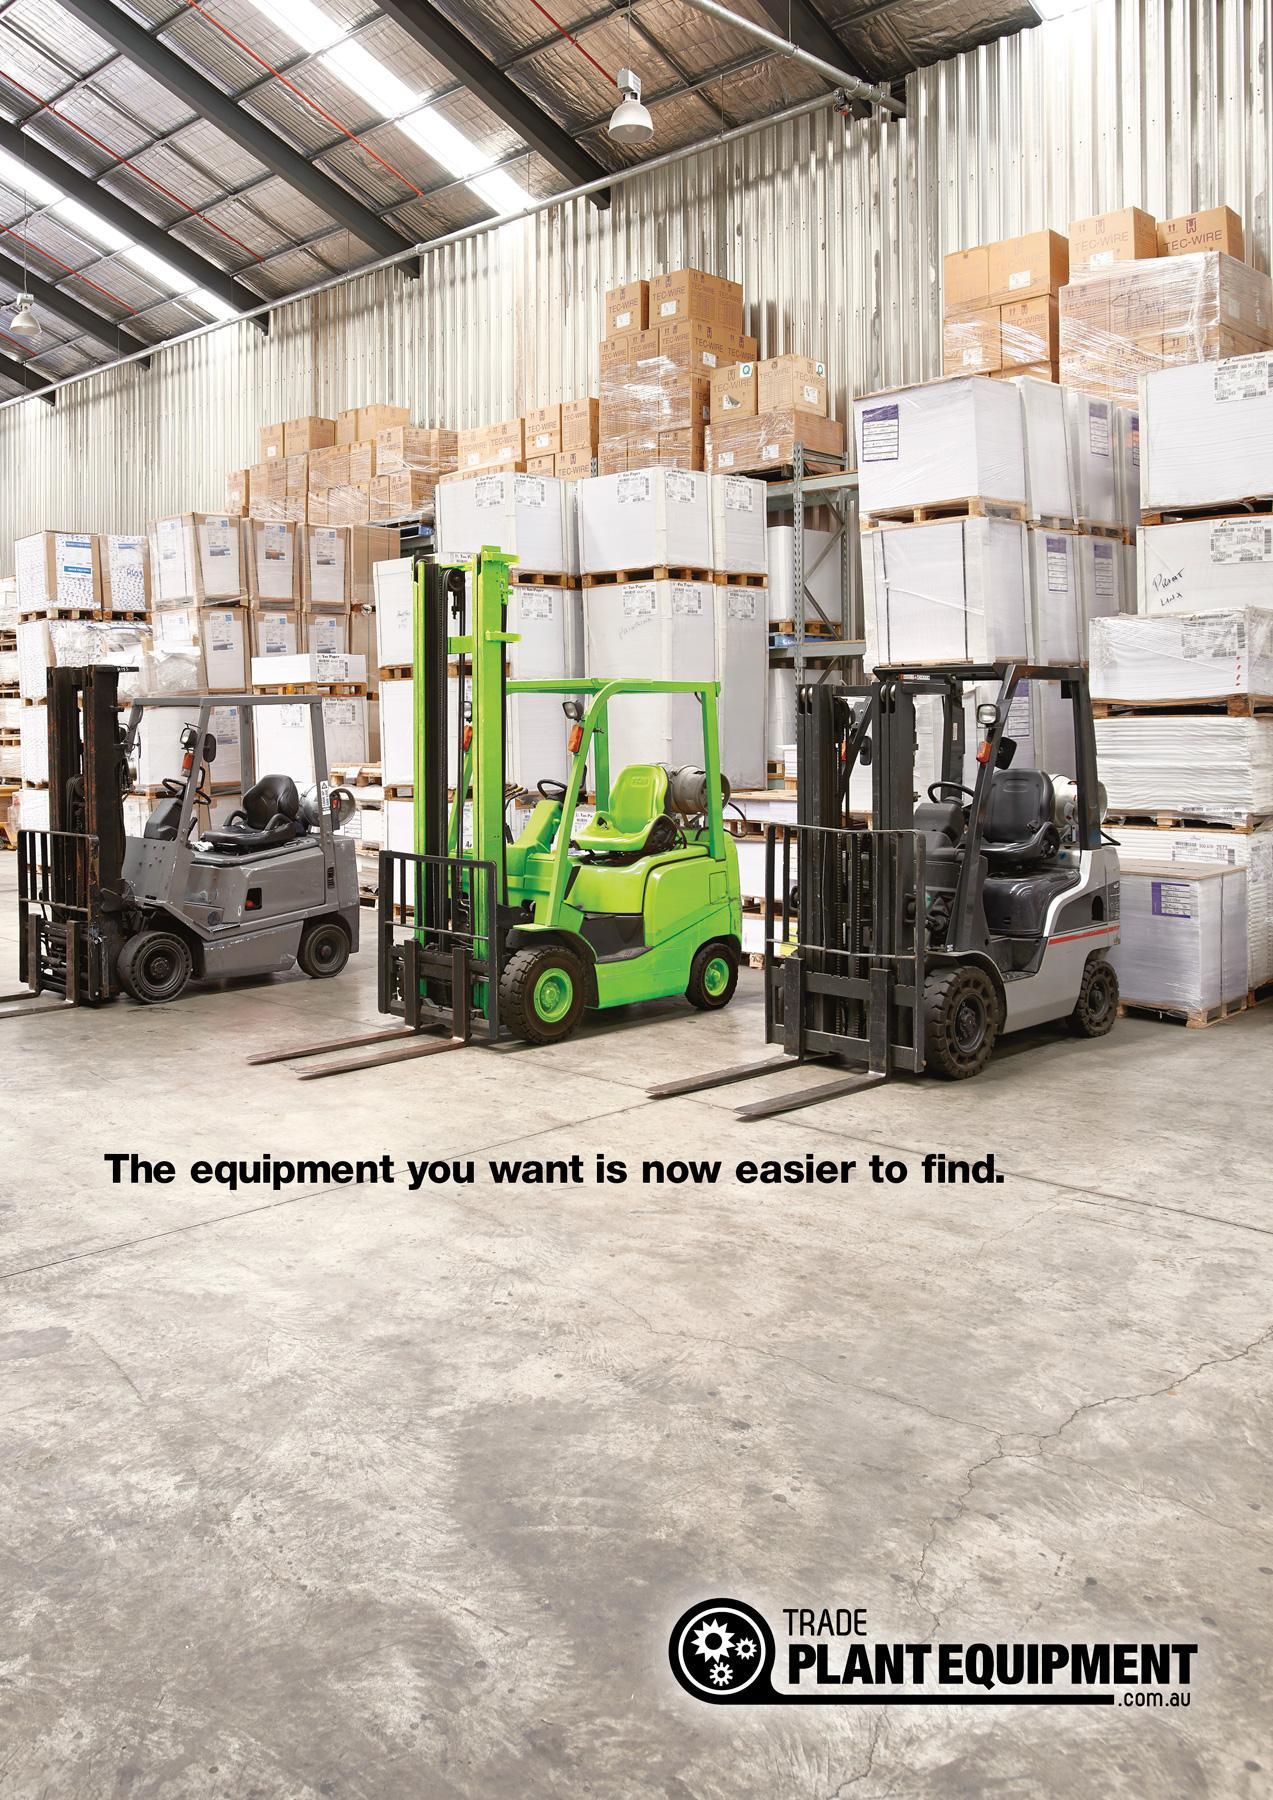 Trader Classifieds Print Ad -  Fluoro Forklift